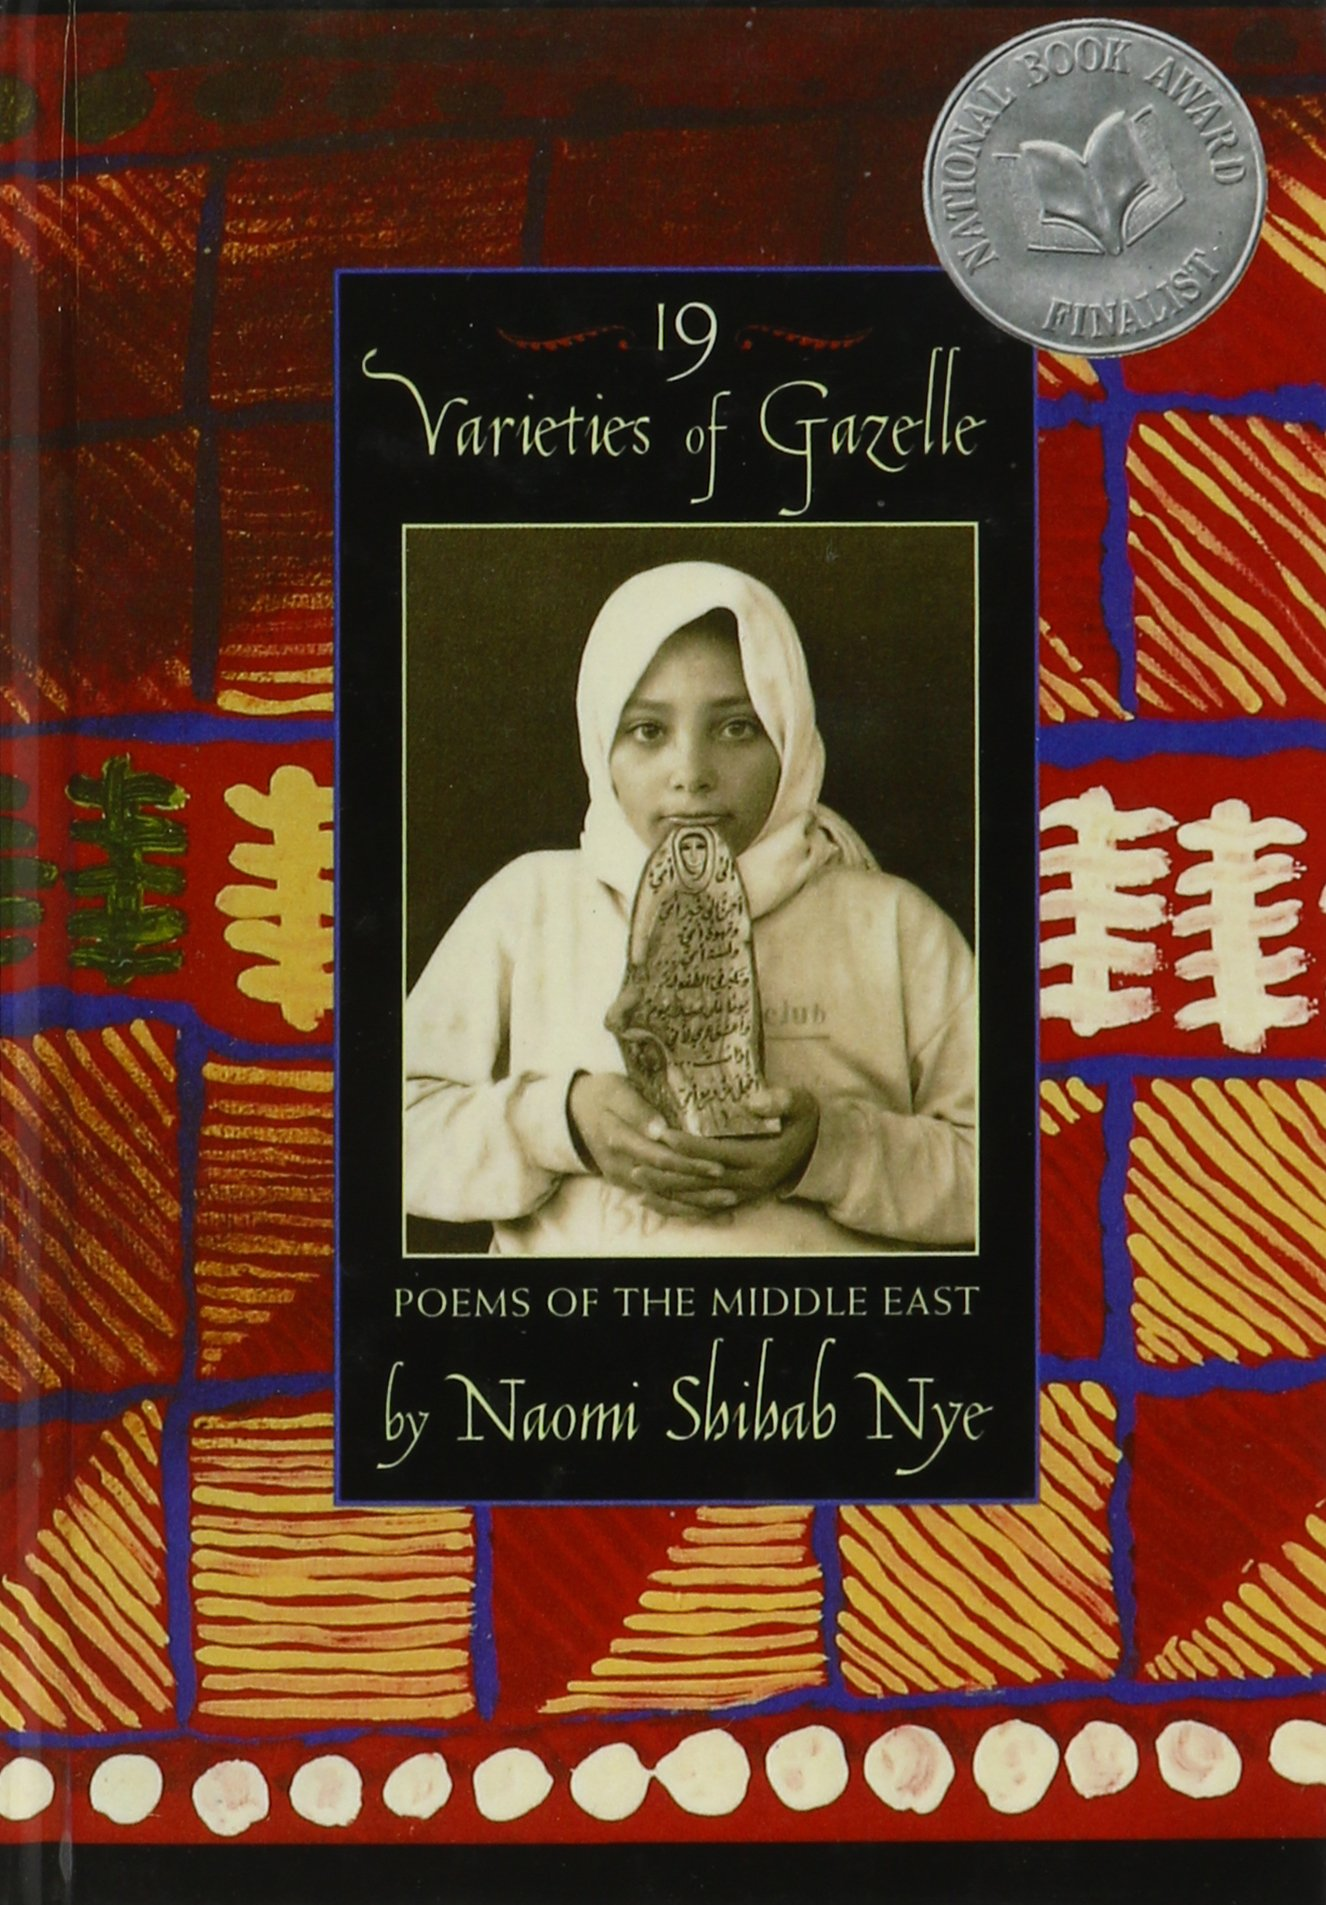 Amazon.com: 19 Varieties of Gazelle: Poems of the Middle East  (9781439512227): Naomi Shihab Nye: Books